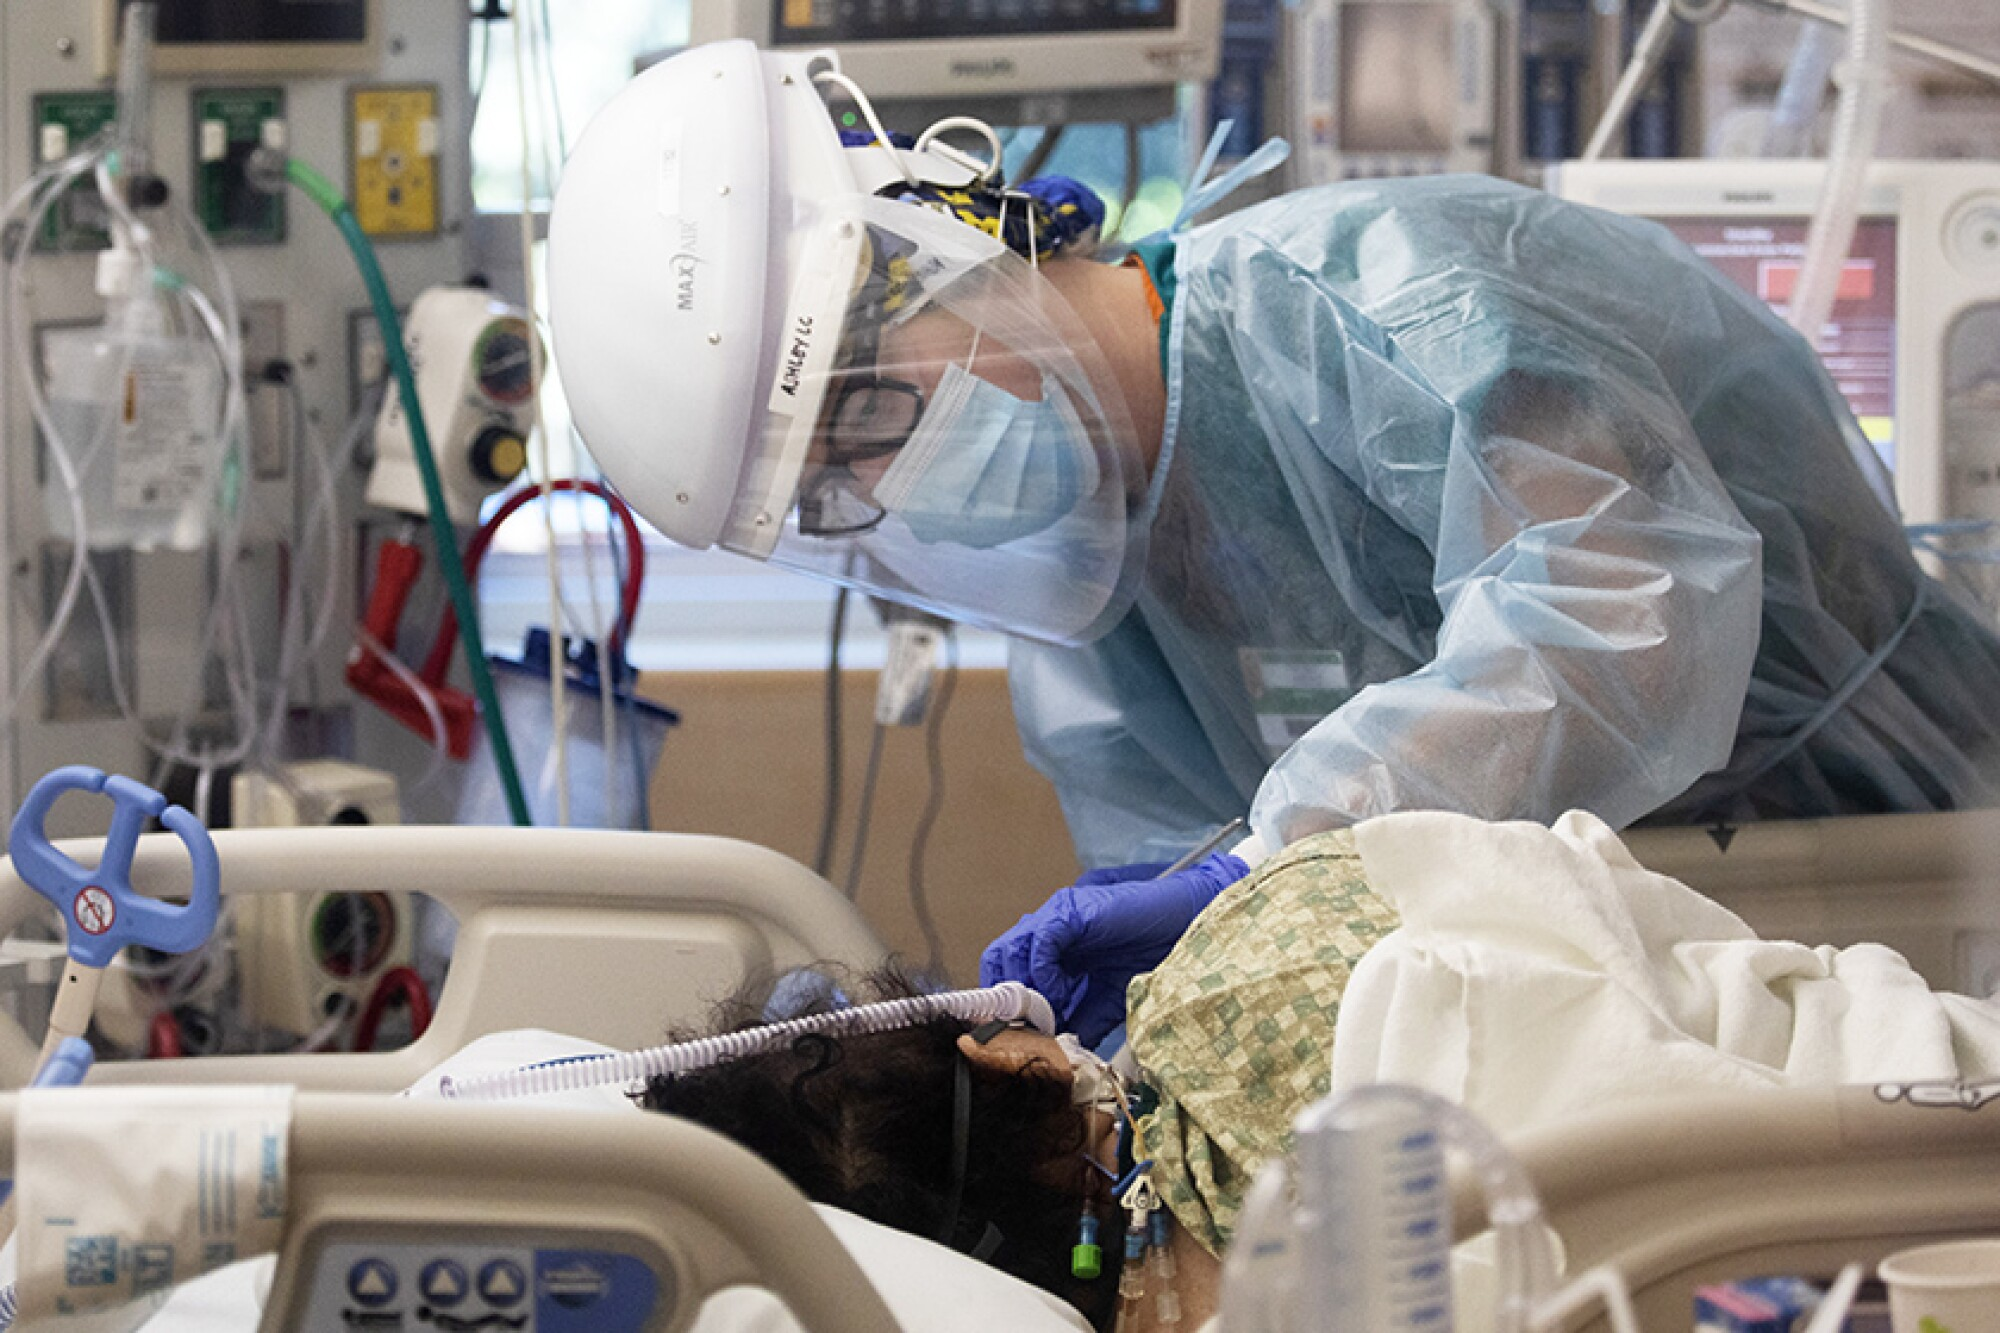 Registered nurse Ashley Cohagen works inside a COVID-19 intensive care unit.